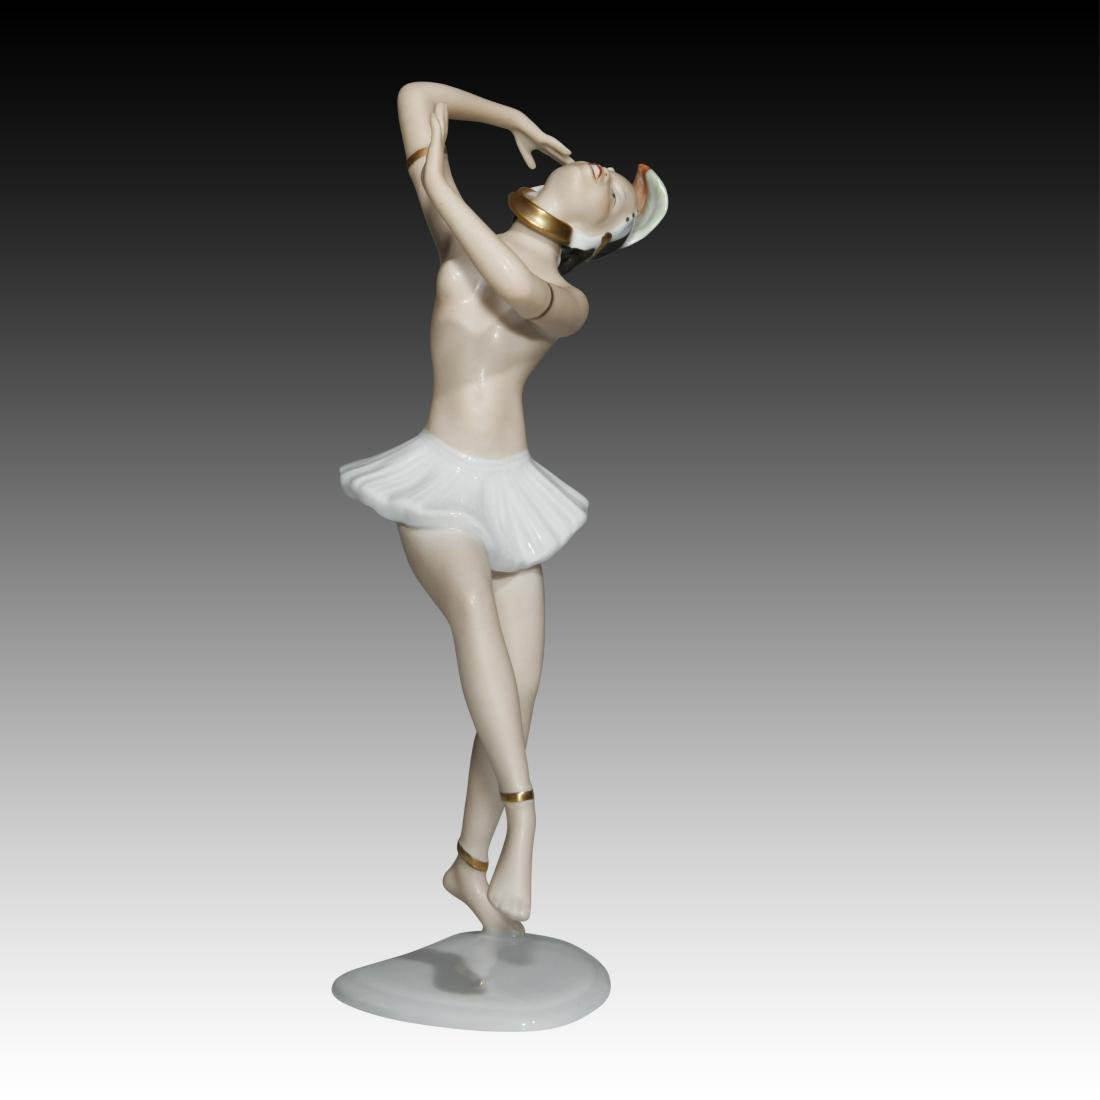 Wallendorf Semi-nude Dancer Figurine